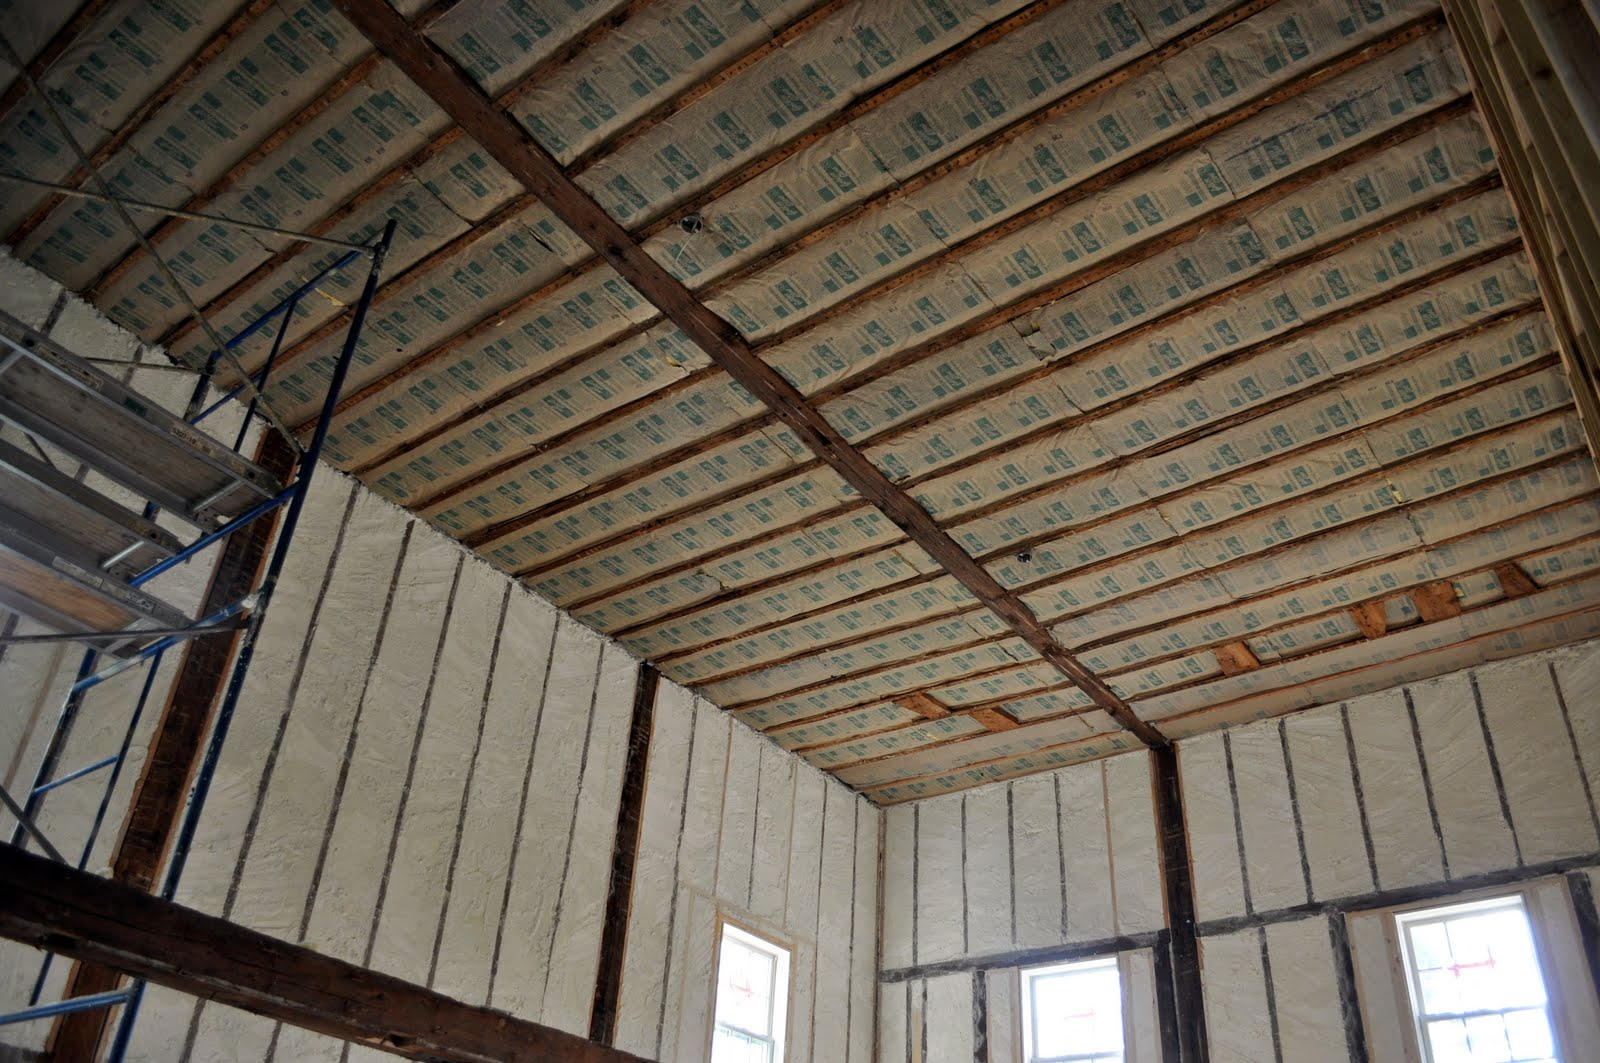 The Ceiling In Greatroom Has Been Insulated With Fibergl Bats On Second Floor Will Be Later When Get Their